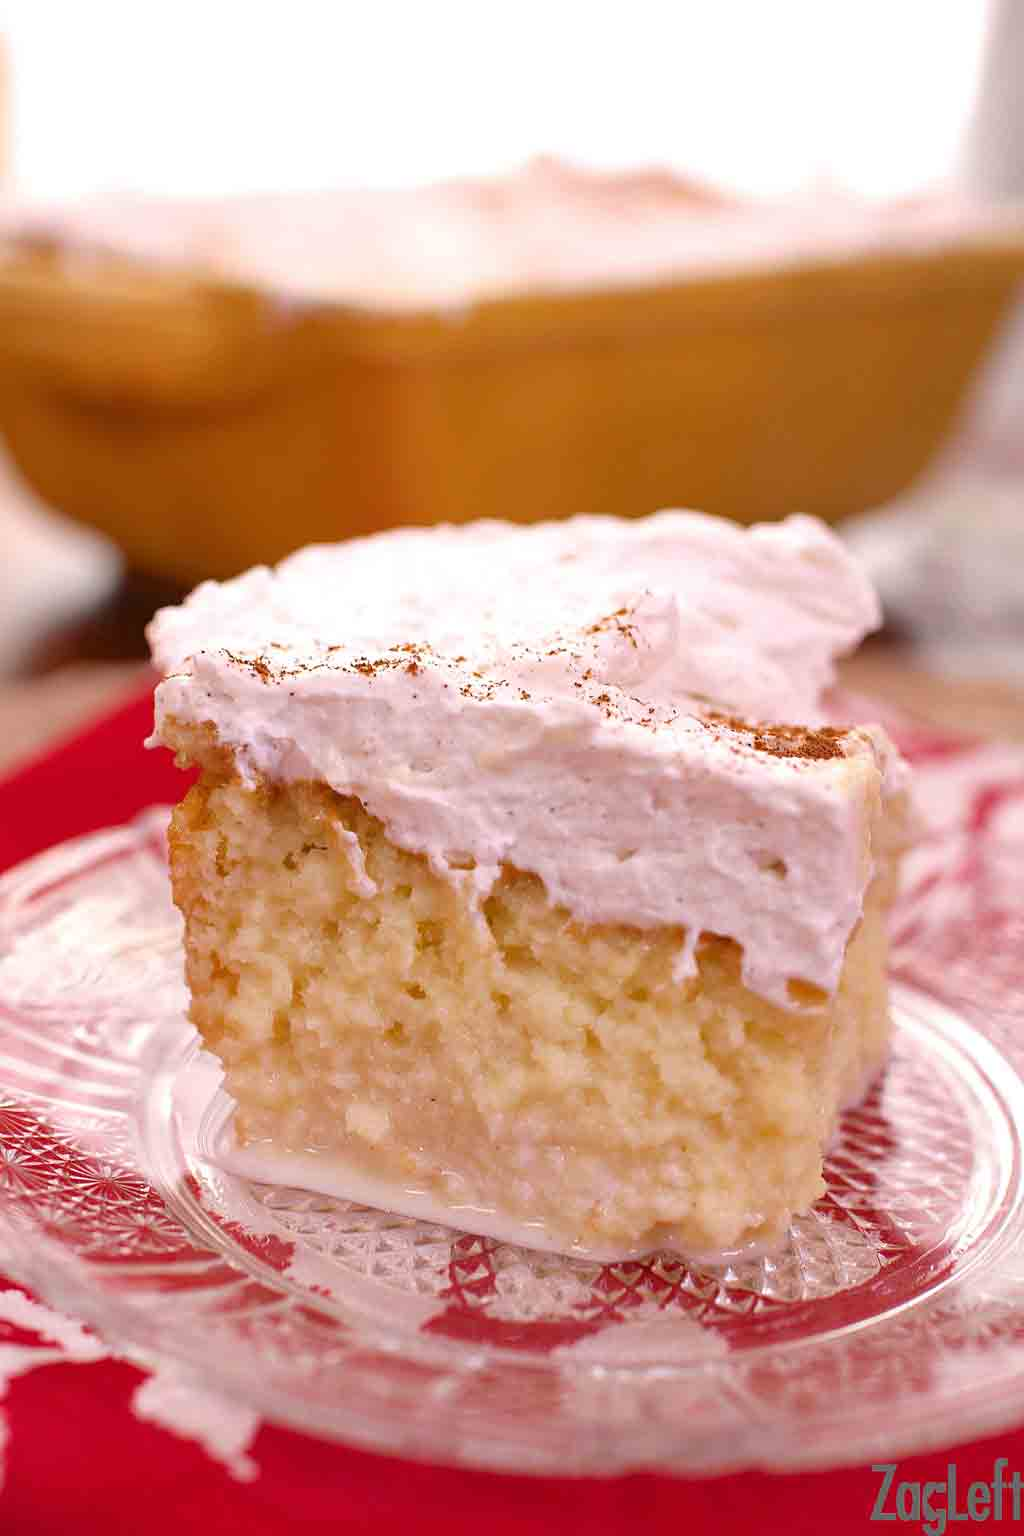 A square slice of tres leches cake on a plate.